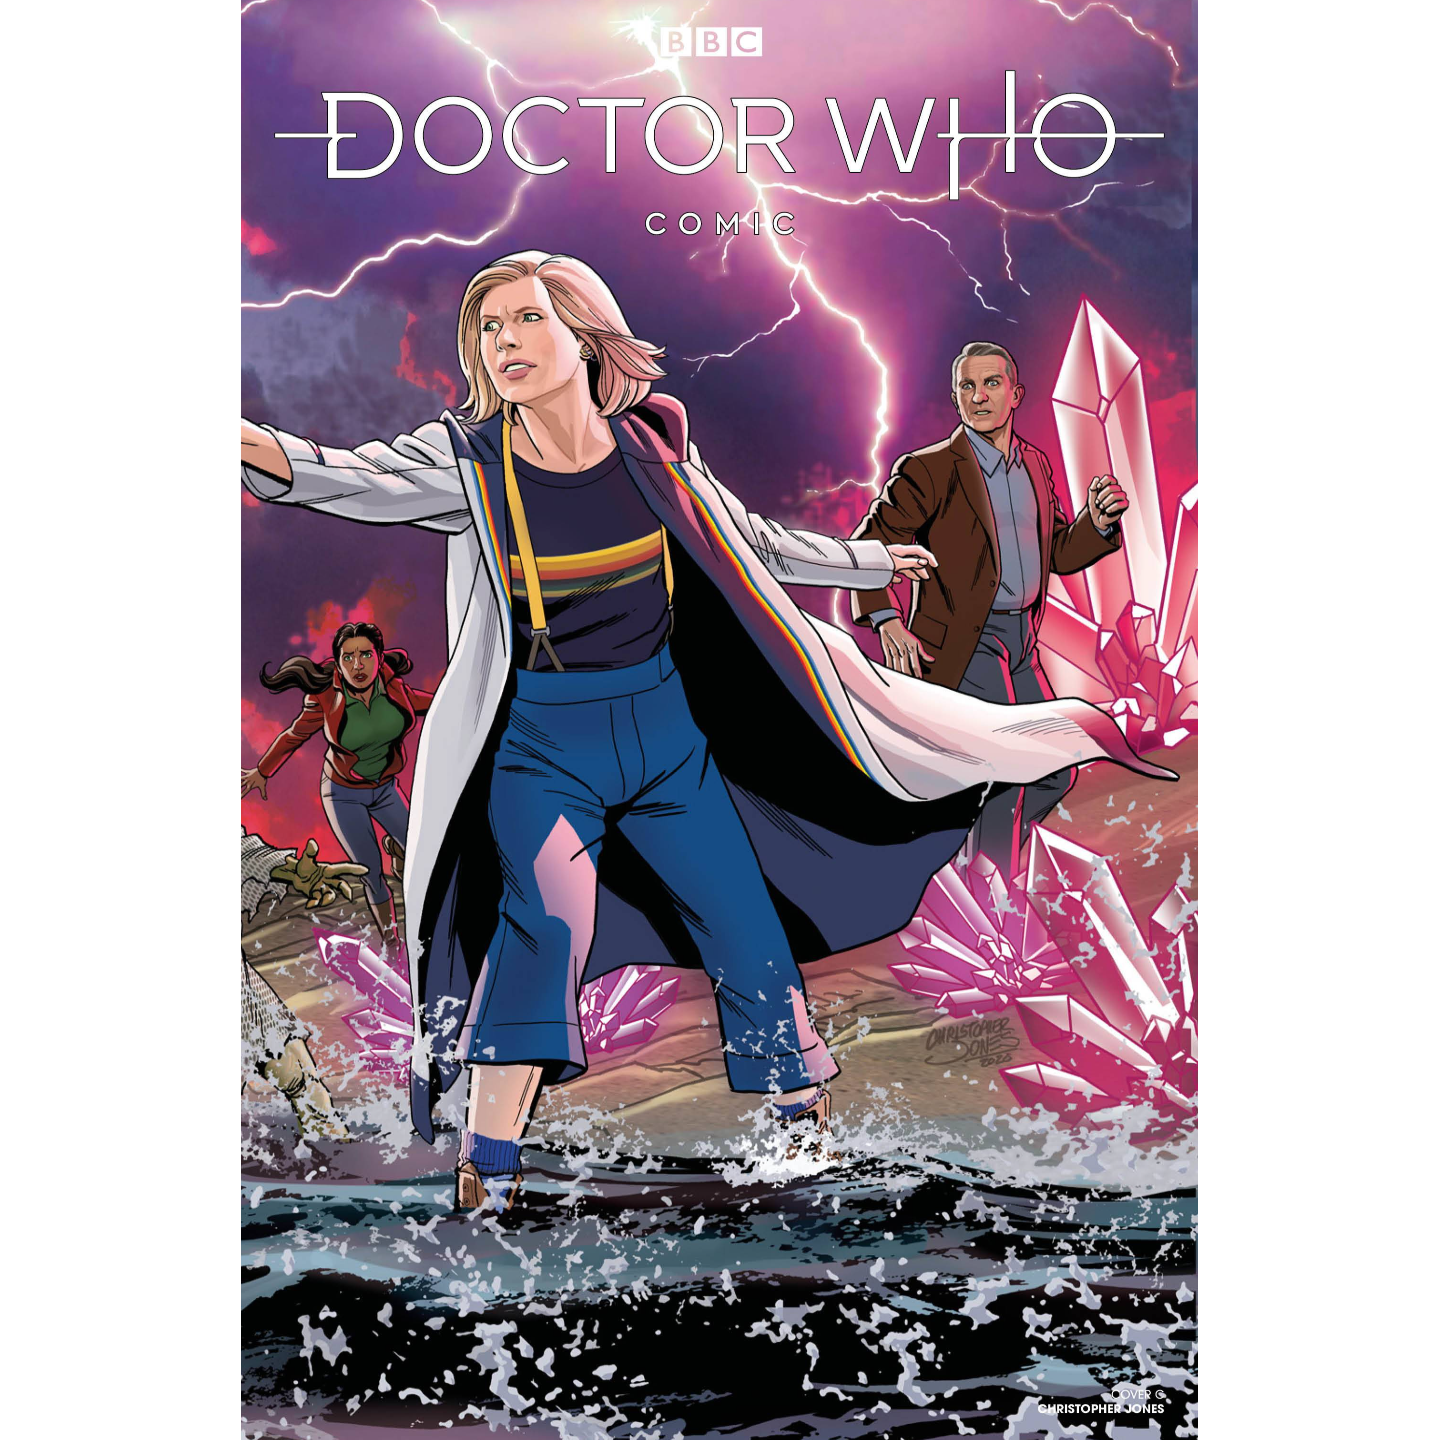 DOCTOR WHO COMICS #4 CVR C JONES